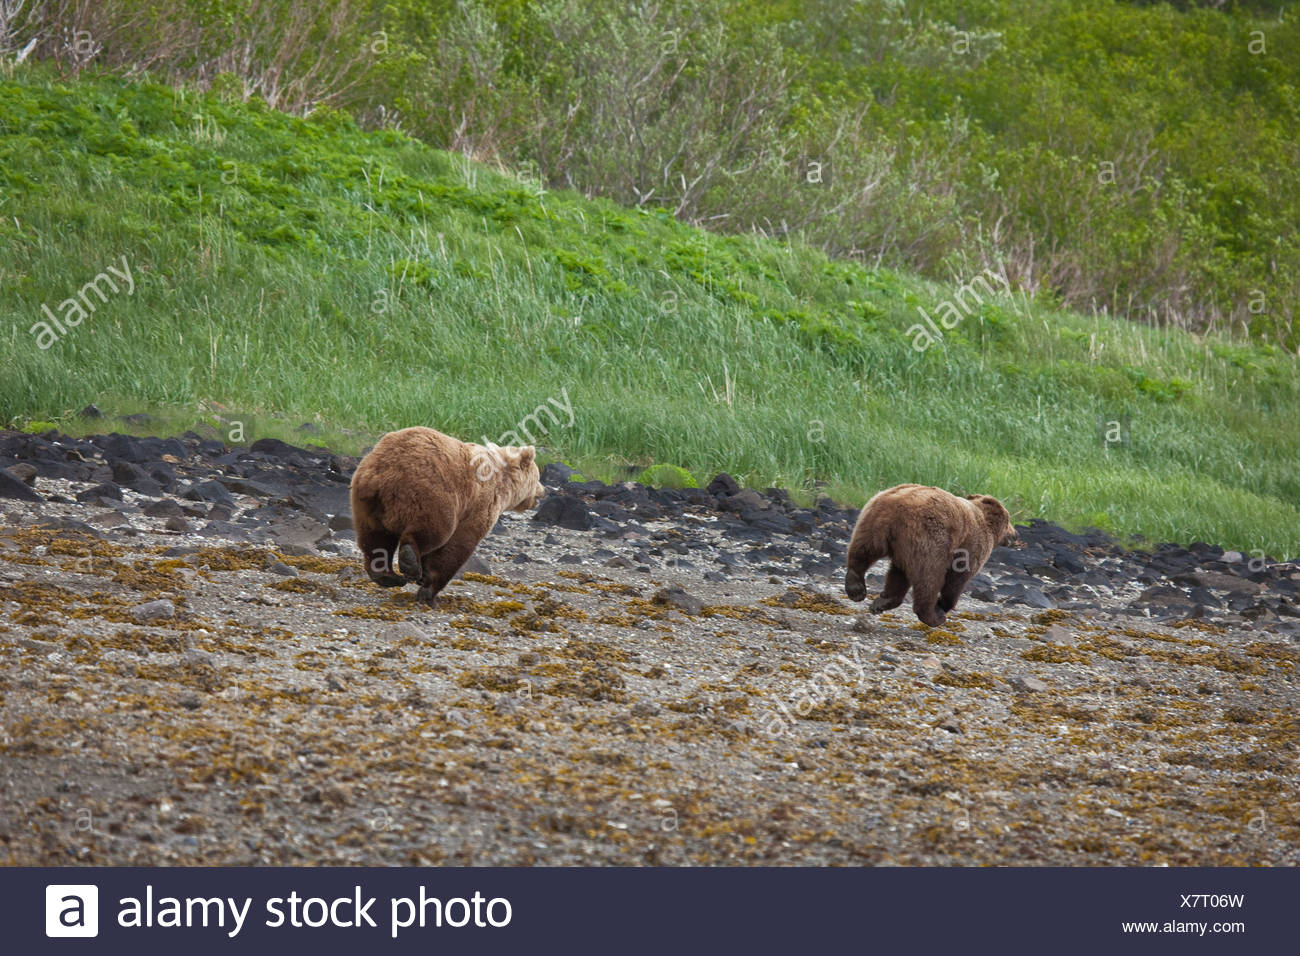 Brown bear runs off another bear on the beach while digging for clams at Geographic Harbor in Katmai National Park, Alaska - Stock Image